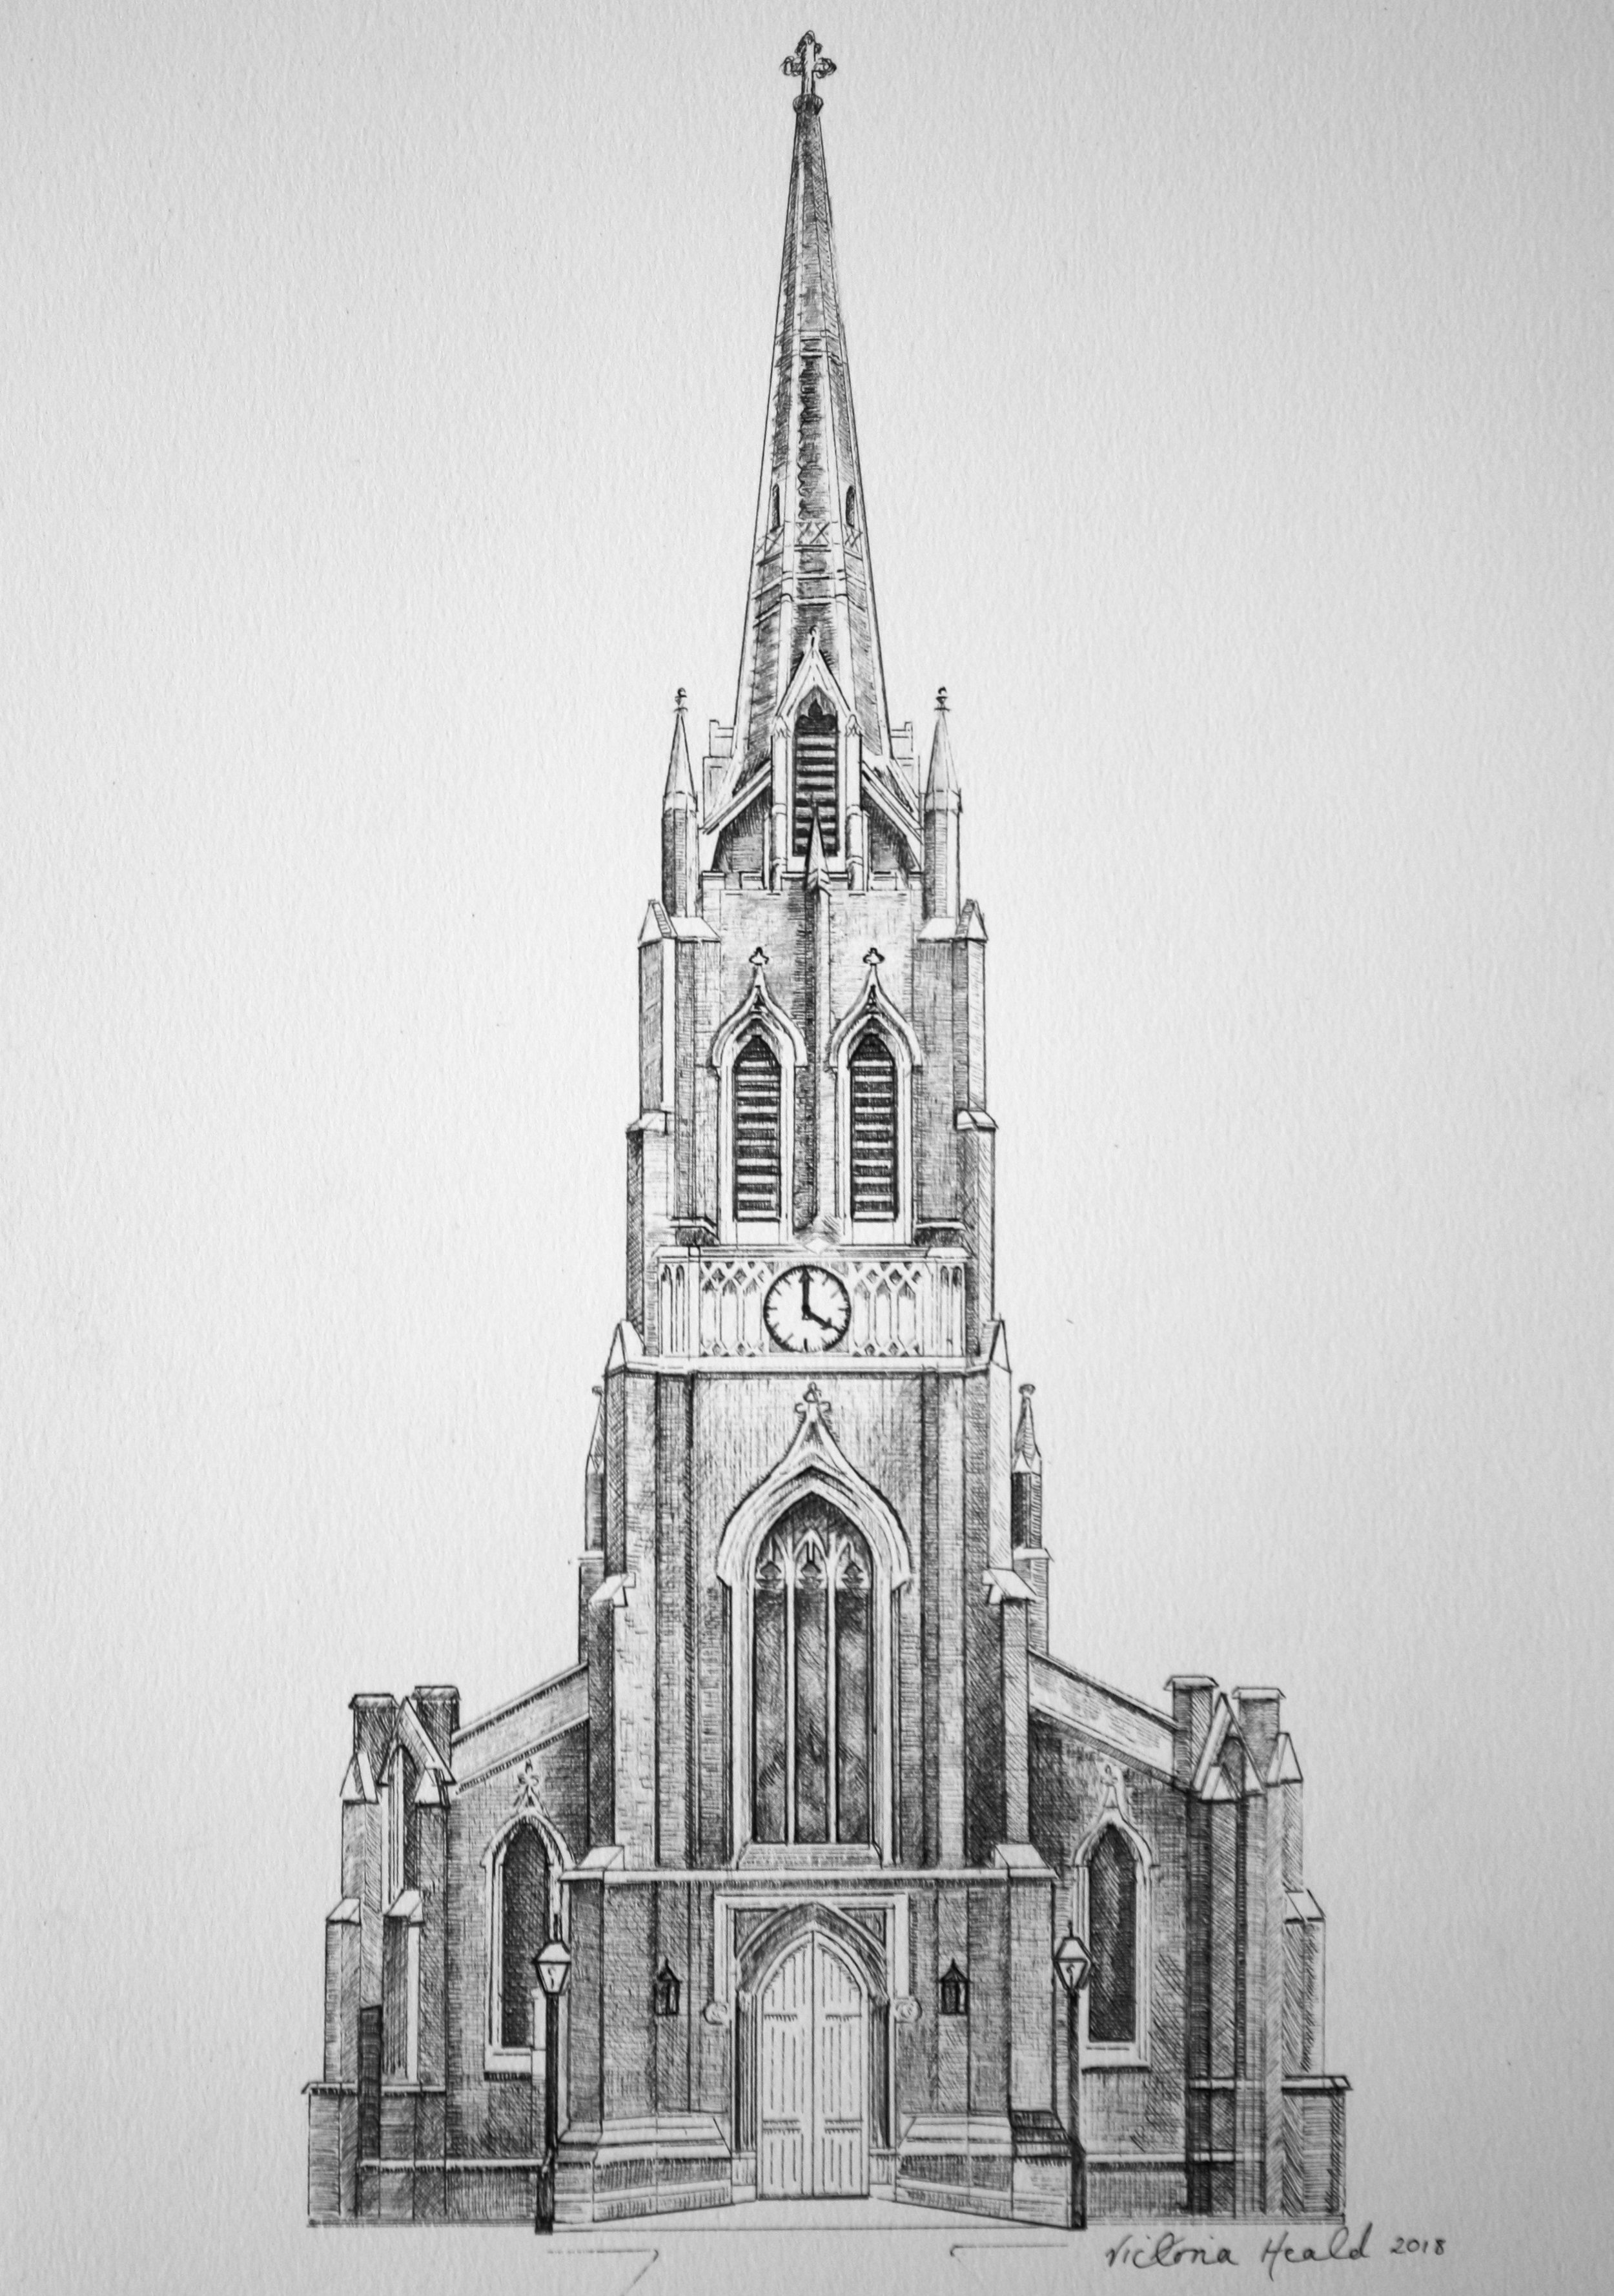 Drawing Commissions - Commission of St. Michael's Church, Highgate, London in pen and ink for a wedding Order of Service.Find out more about drawing commissions here.